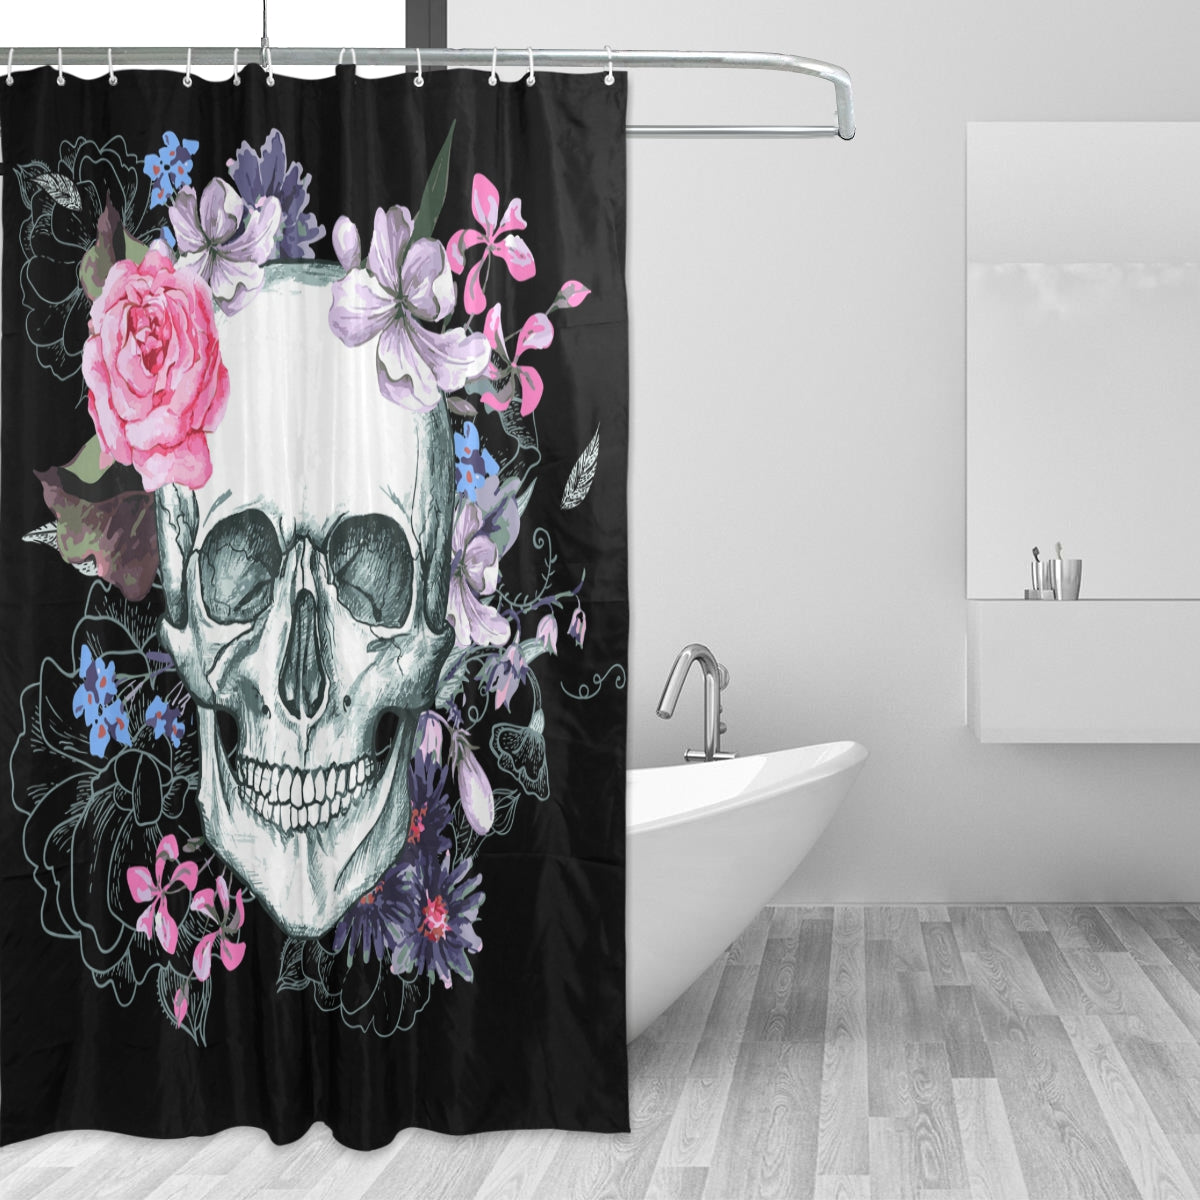 Sugar Skull Day Of The Dead Shower Curtain 72x72 Inch